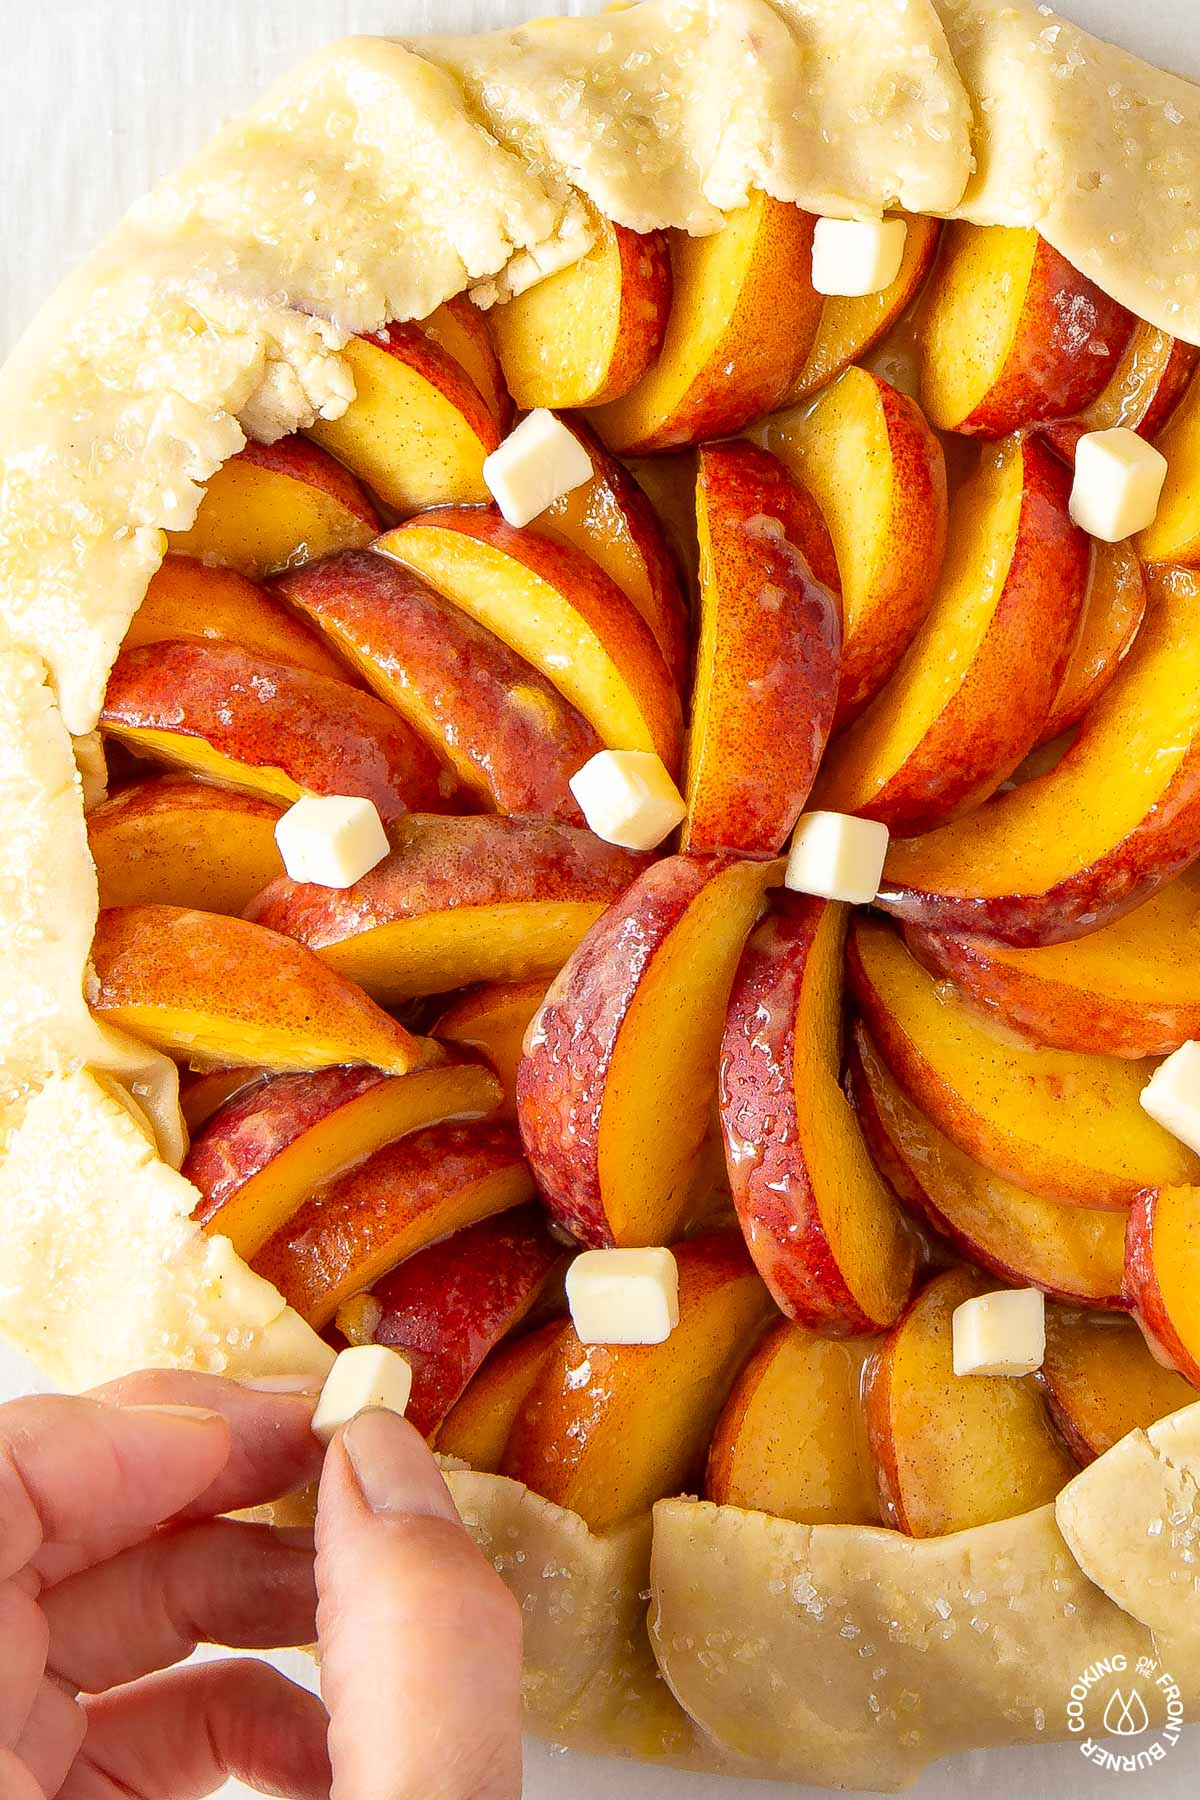 placing small pieces of butter on a unbaked peach galette